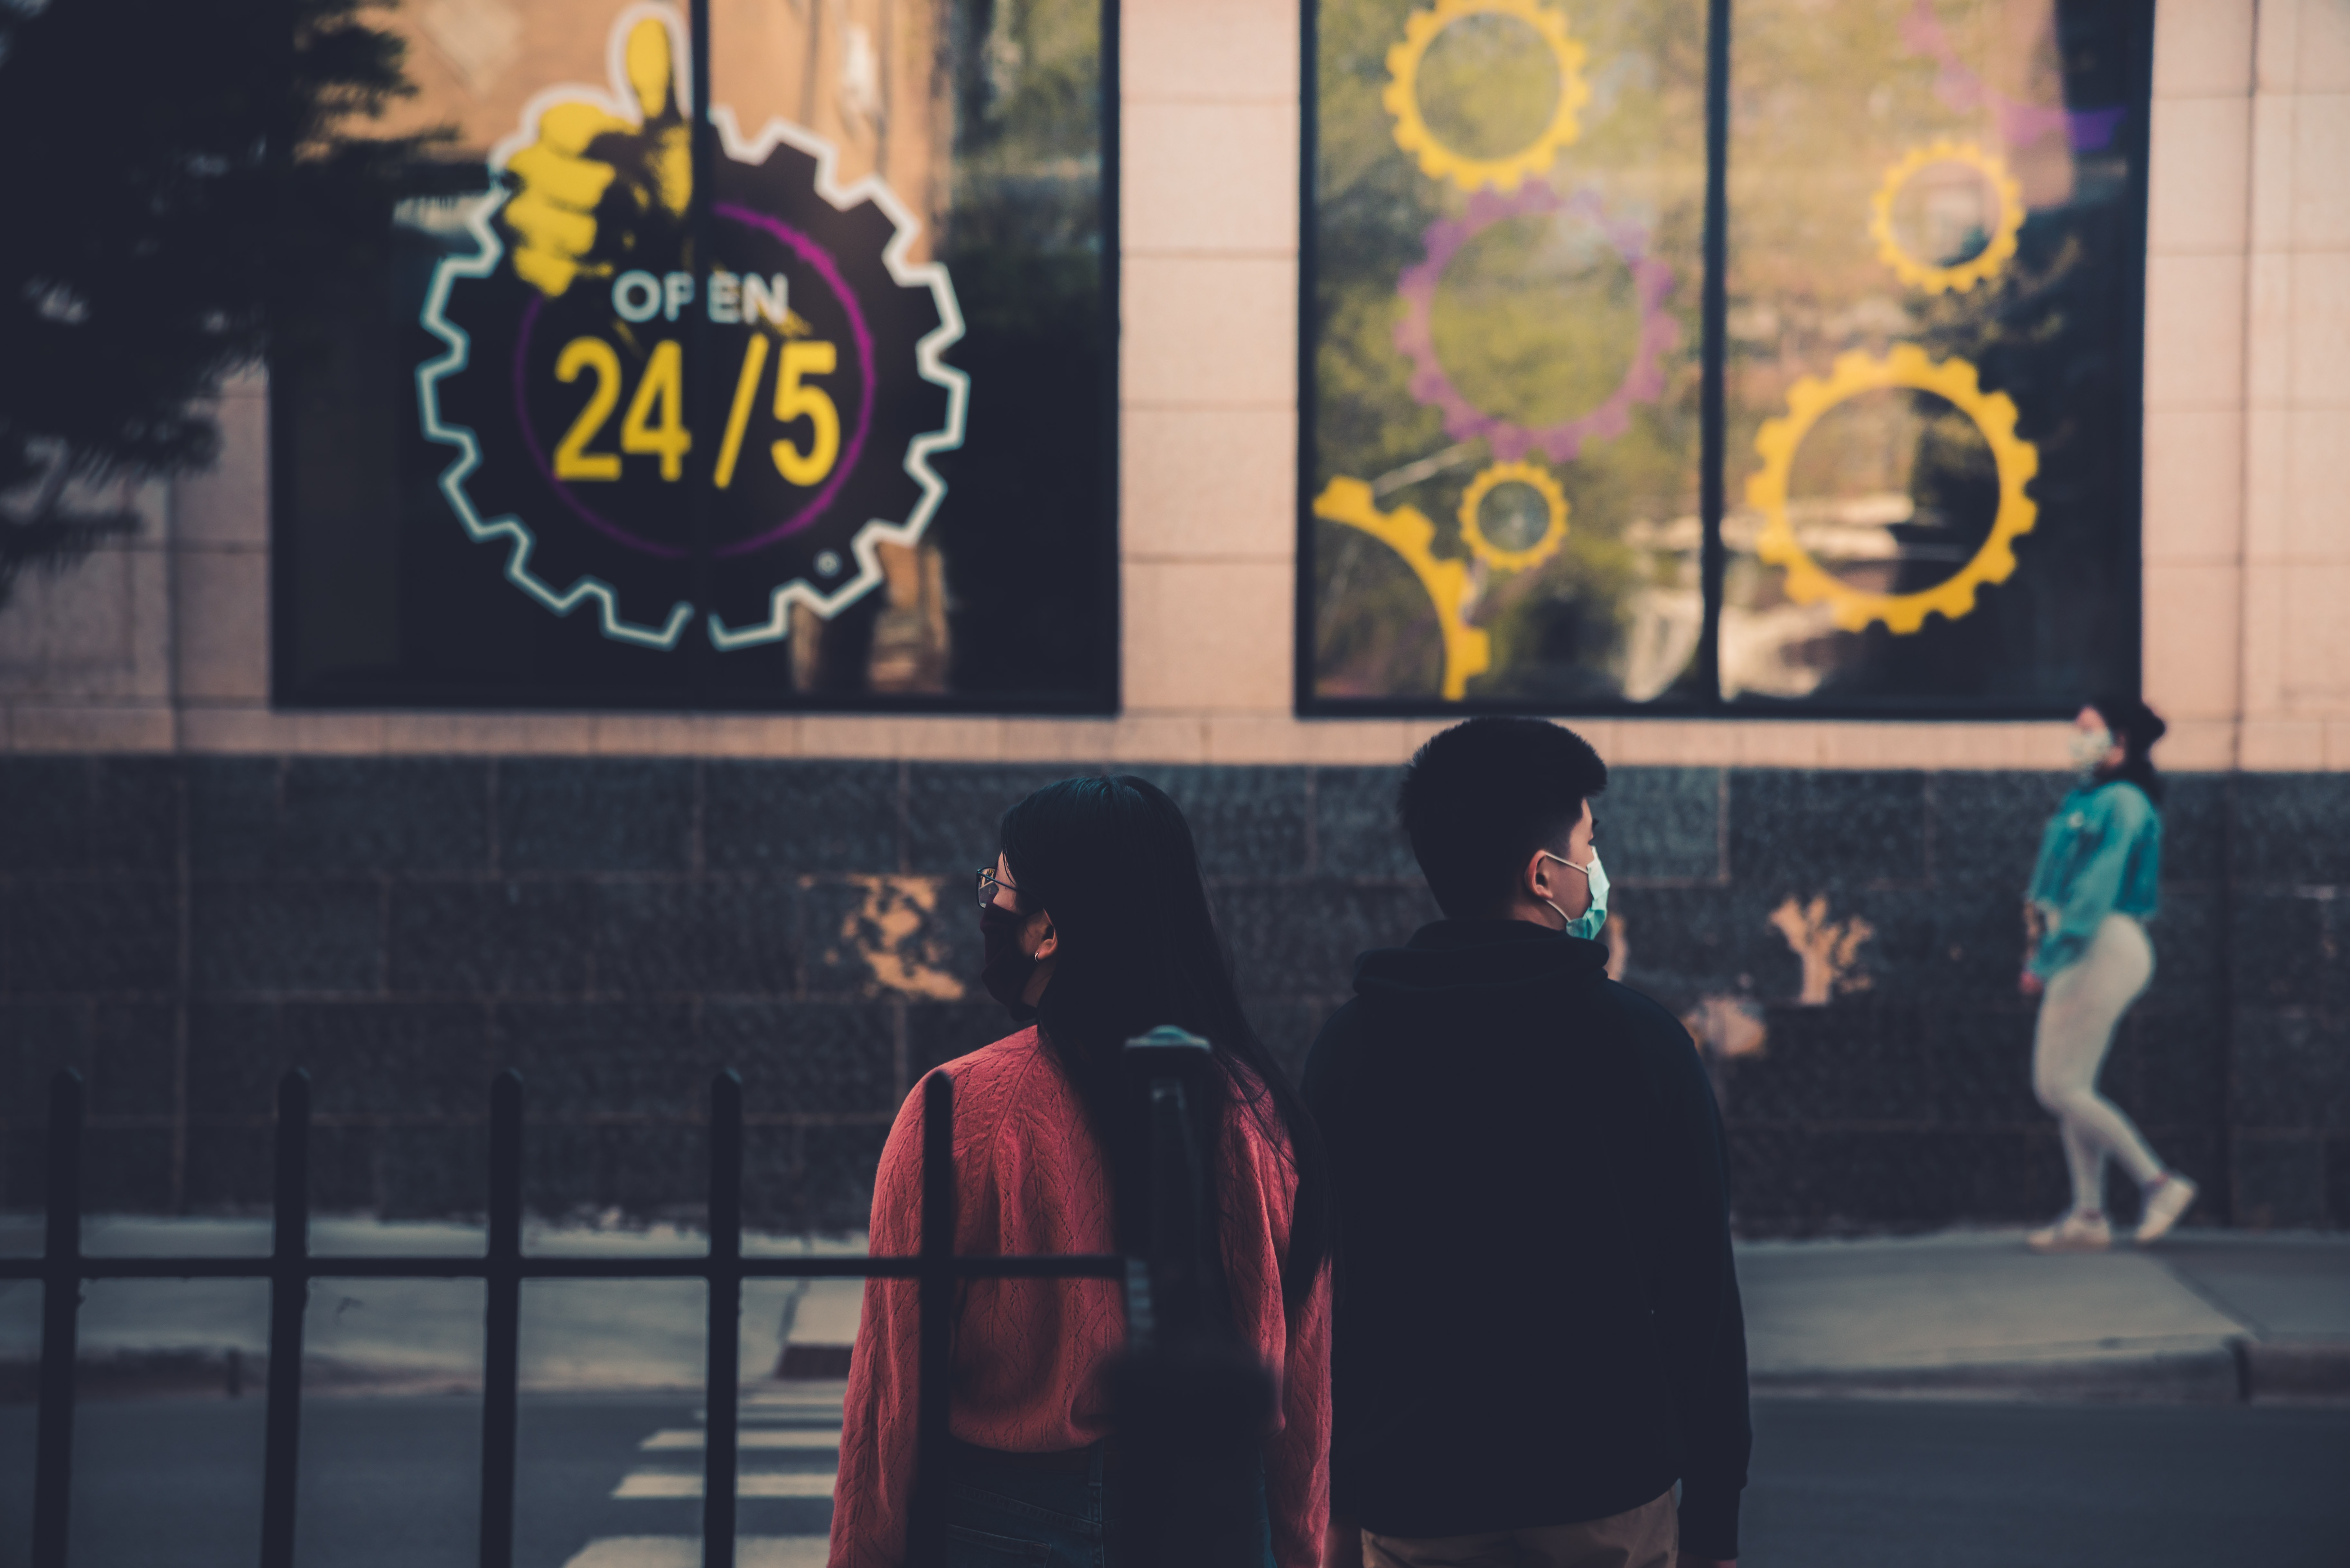 What makes brands stand out today? It is all about customer experience. Photo by Max Bender/ Unsplash